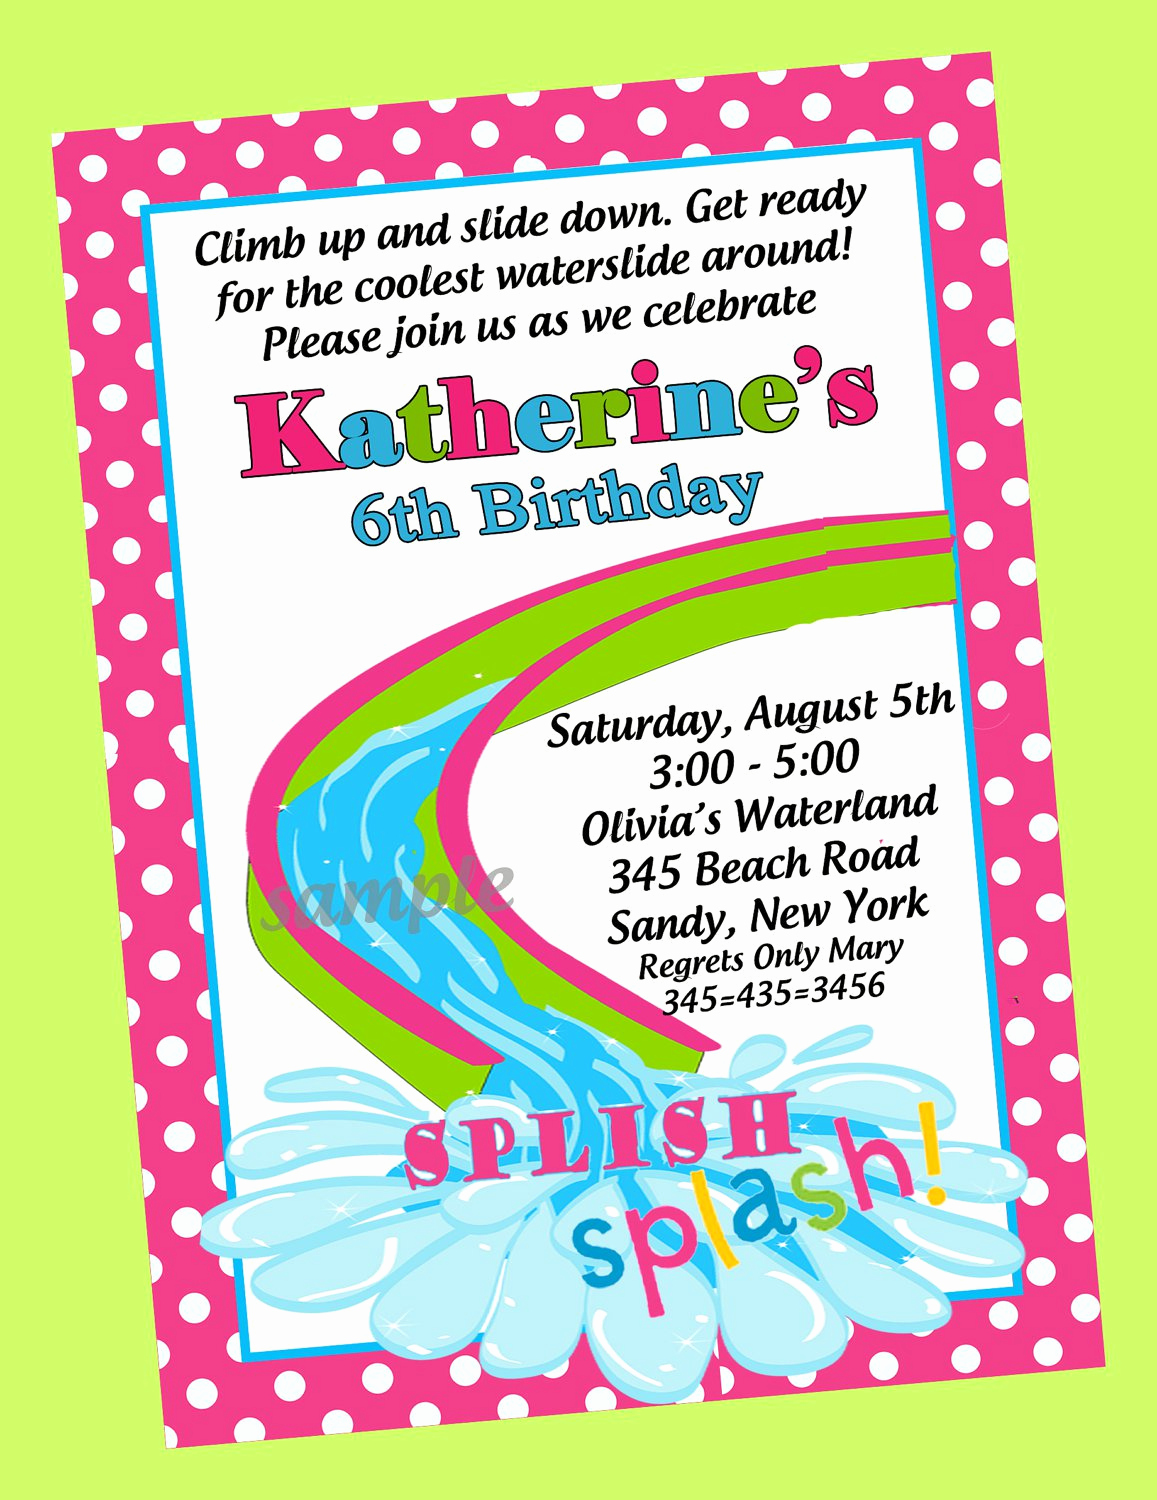 Pool Party Invitation Wording Inspirational Birthday Pool Party Invitation Wording